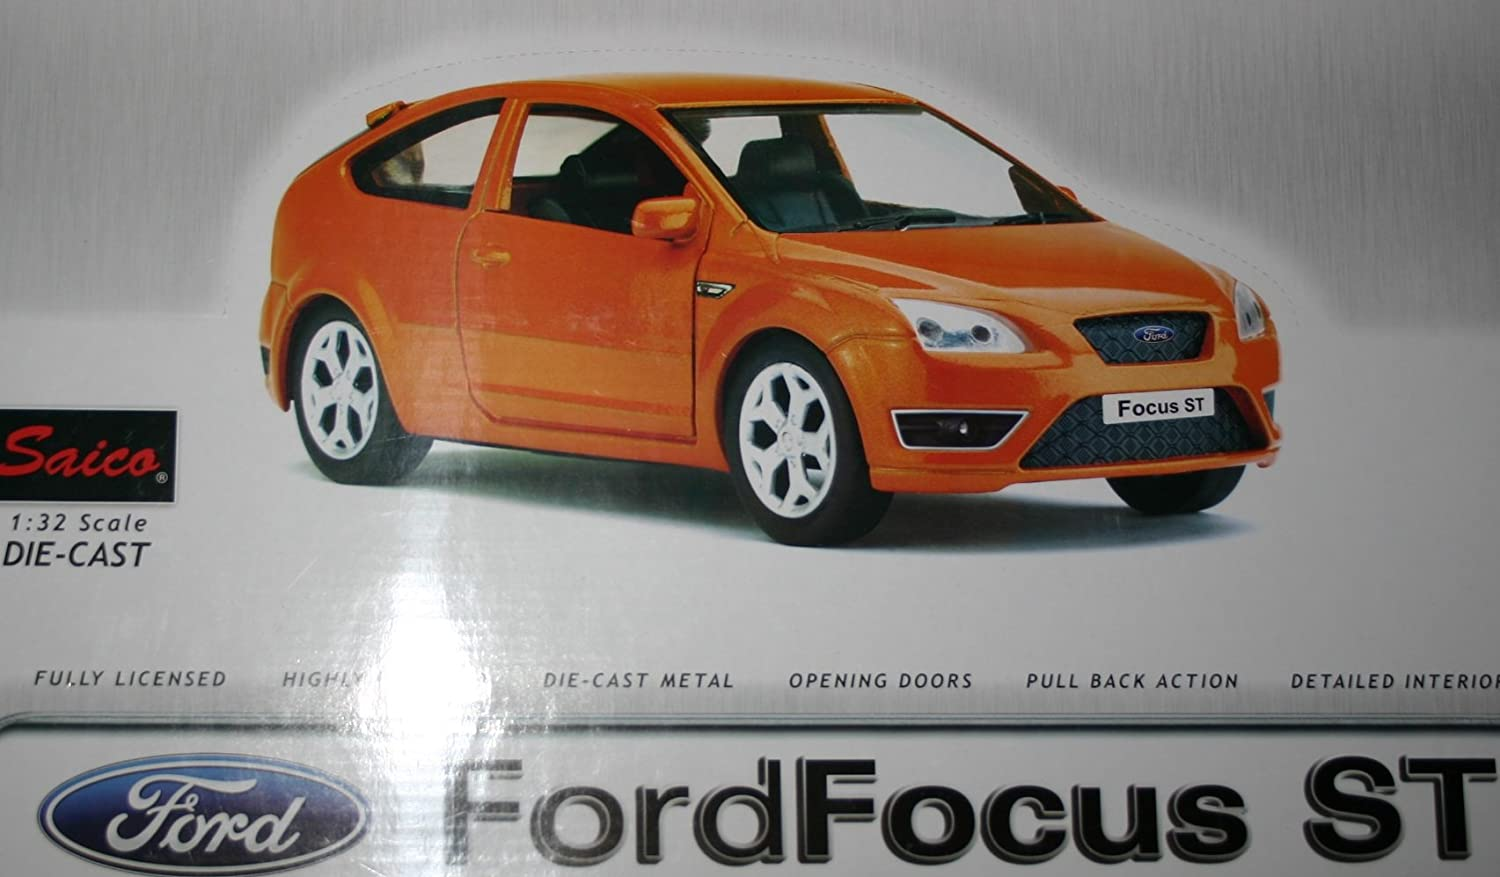 Ford Focus ST Car 132 Scale Model Highly Detailed Model By Saico Amazon.co.uk Toys u0026 Games & Ford Focus ST Car 1:32 Scale Model Highly Detailed Model By Saico ... markmcfarlin.com